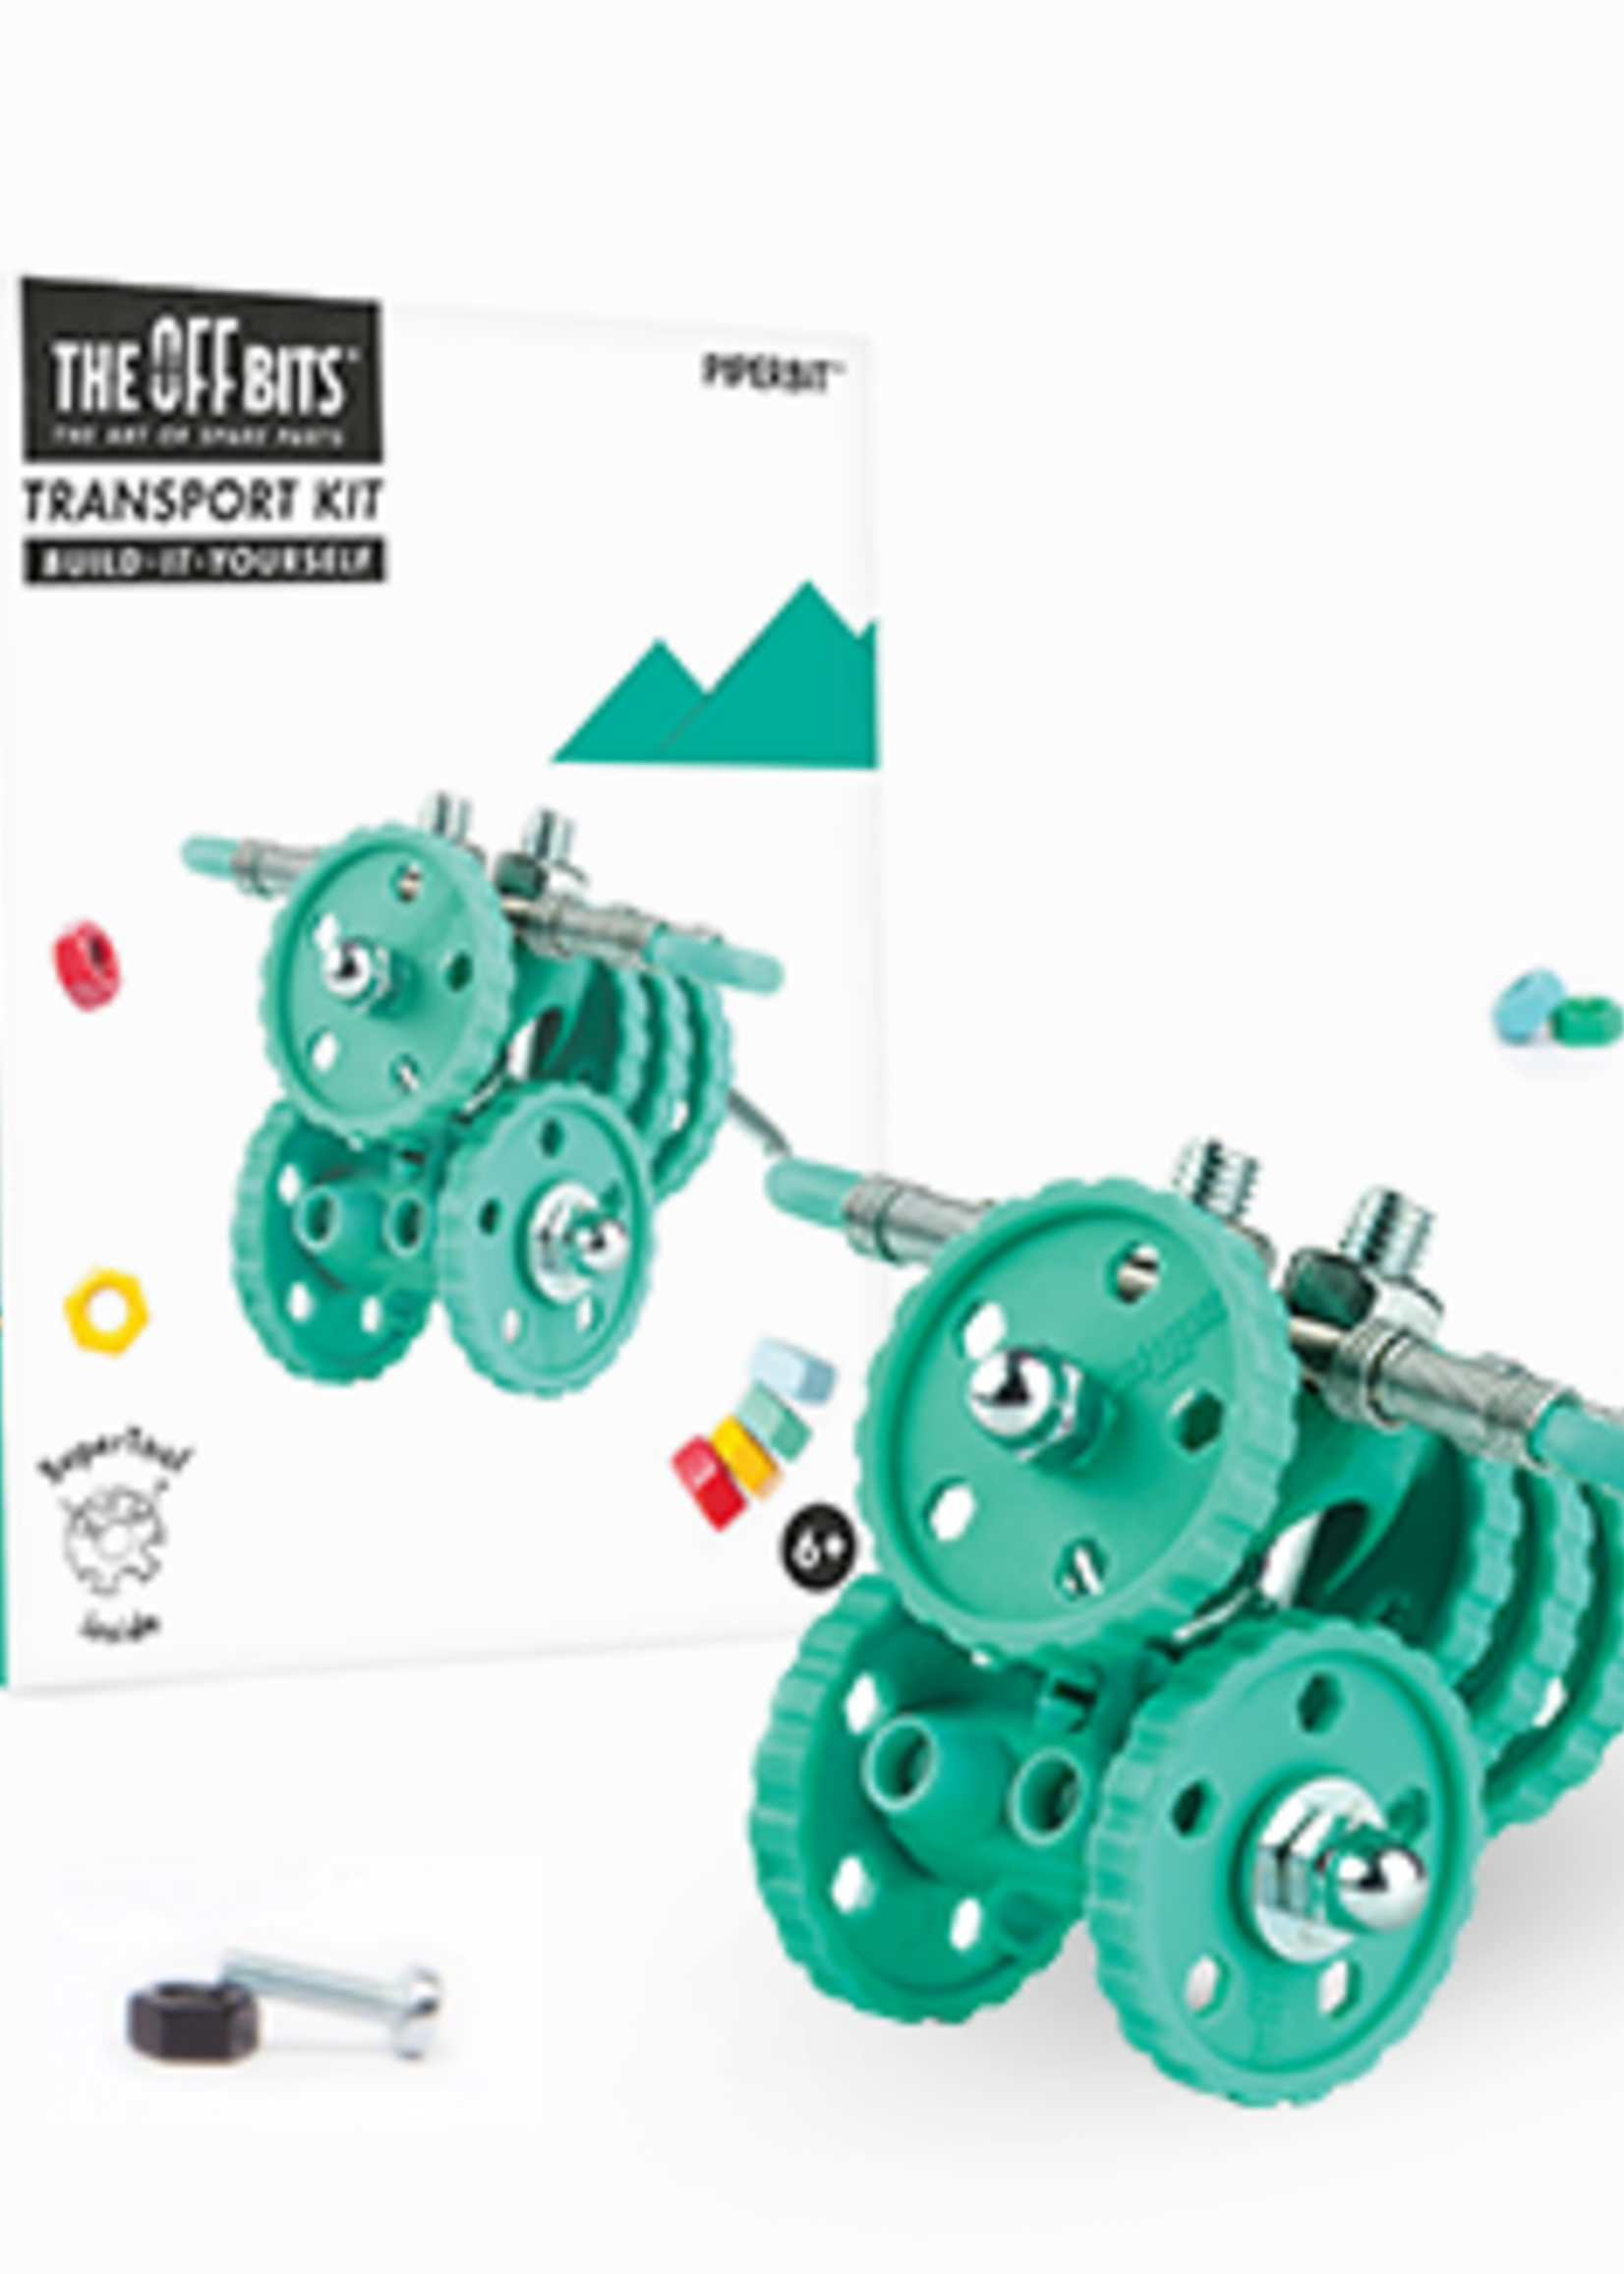 The Offbits Piperbit - Helicopter (S)